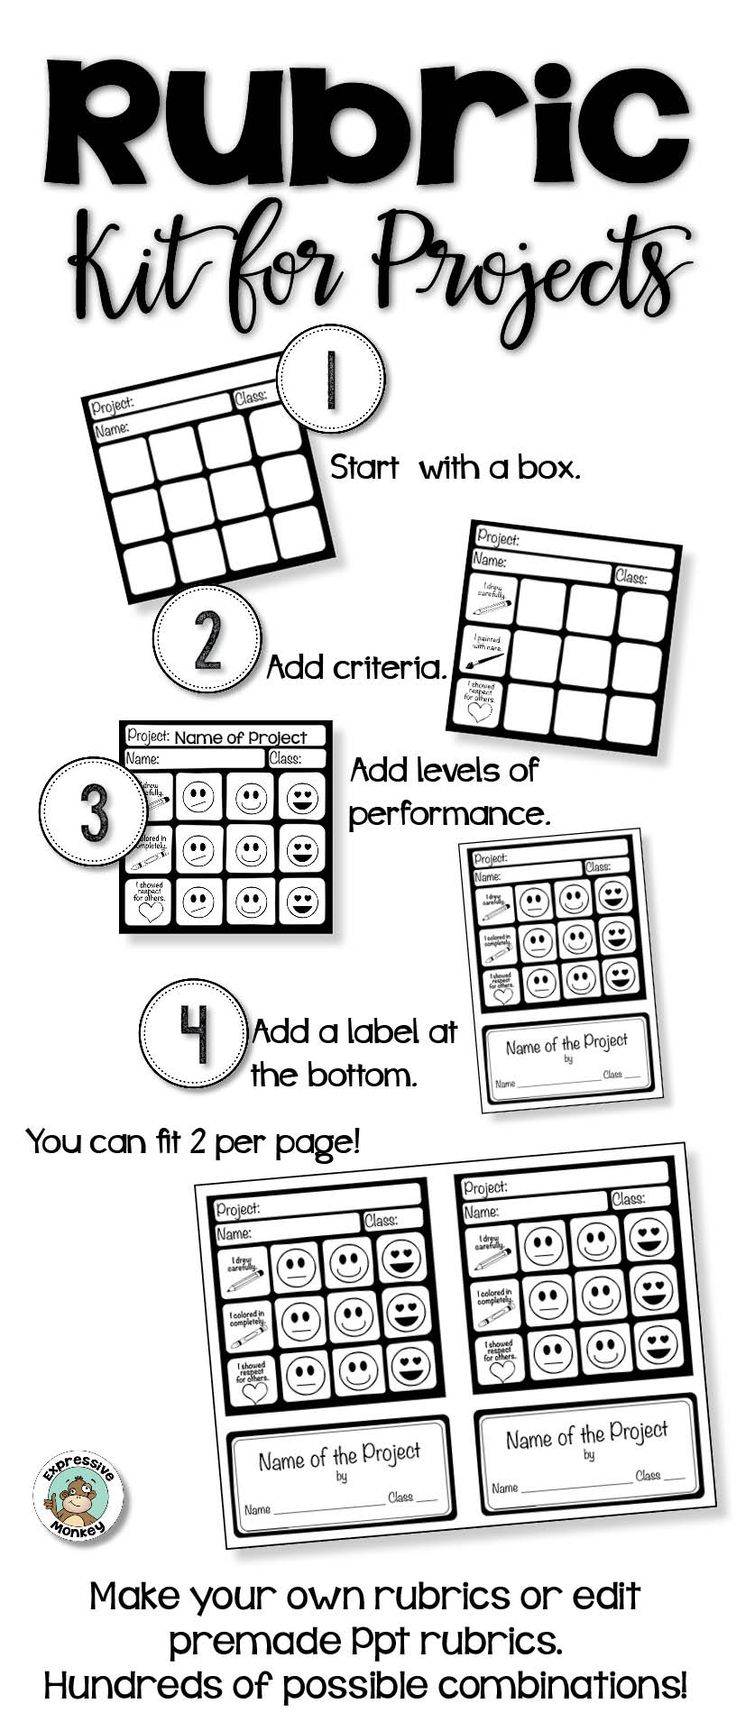 47 best images about Reflection and Assessment on Pinterest